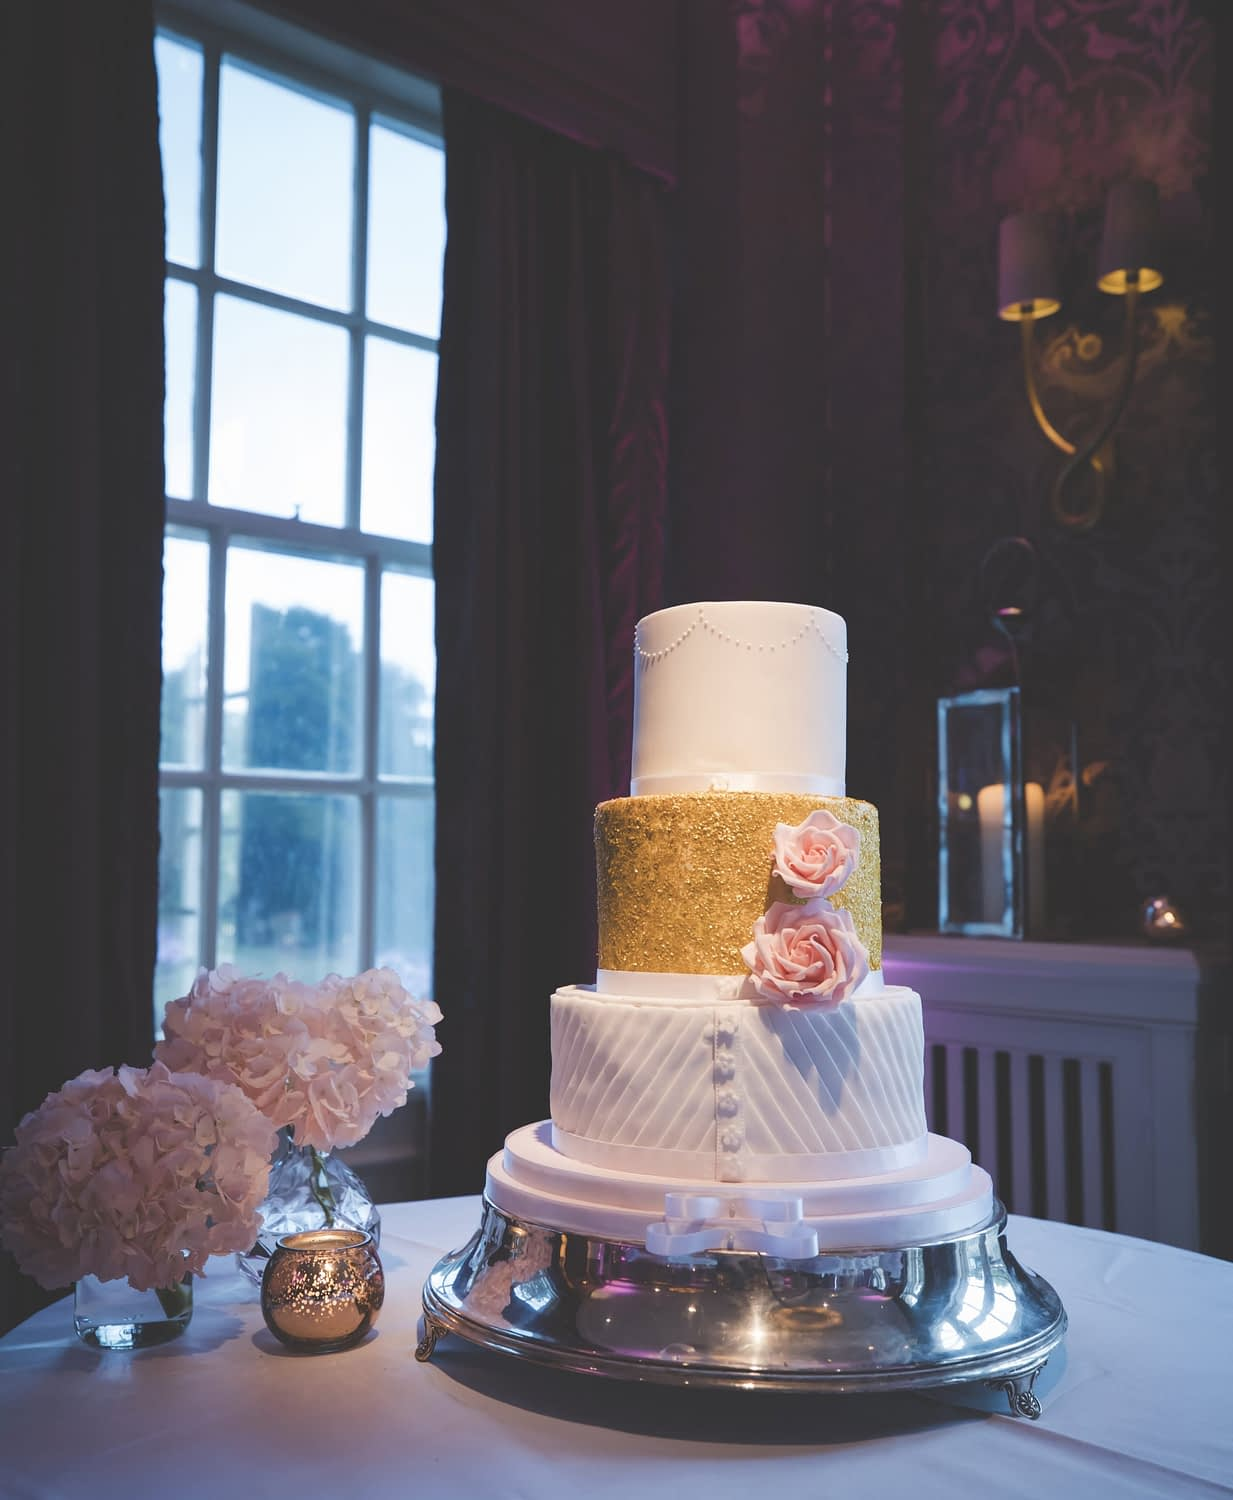 tiered wedding cake and flowers on a table by a window